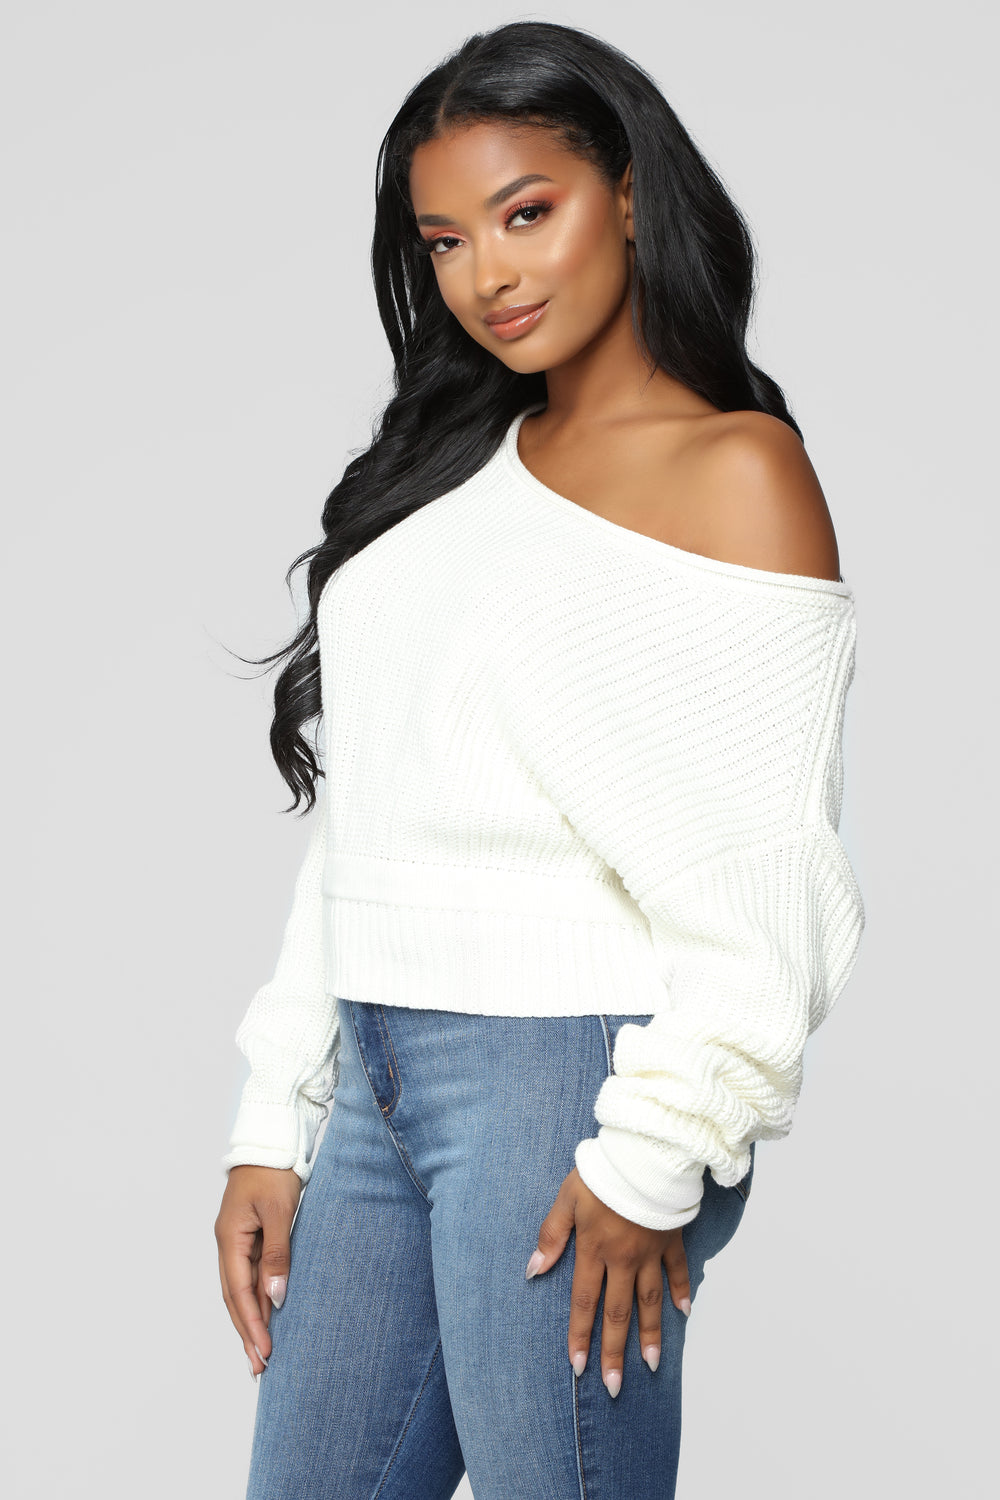 Eve Cropped Sweater - Ivory